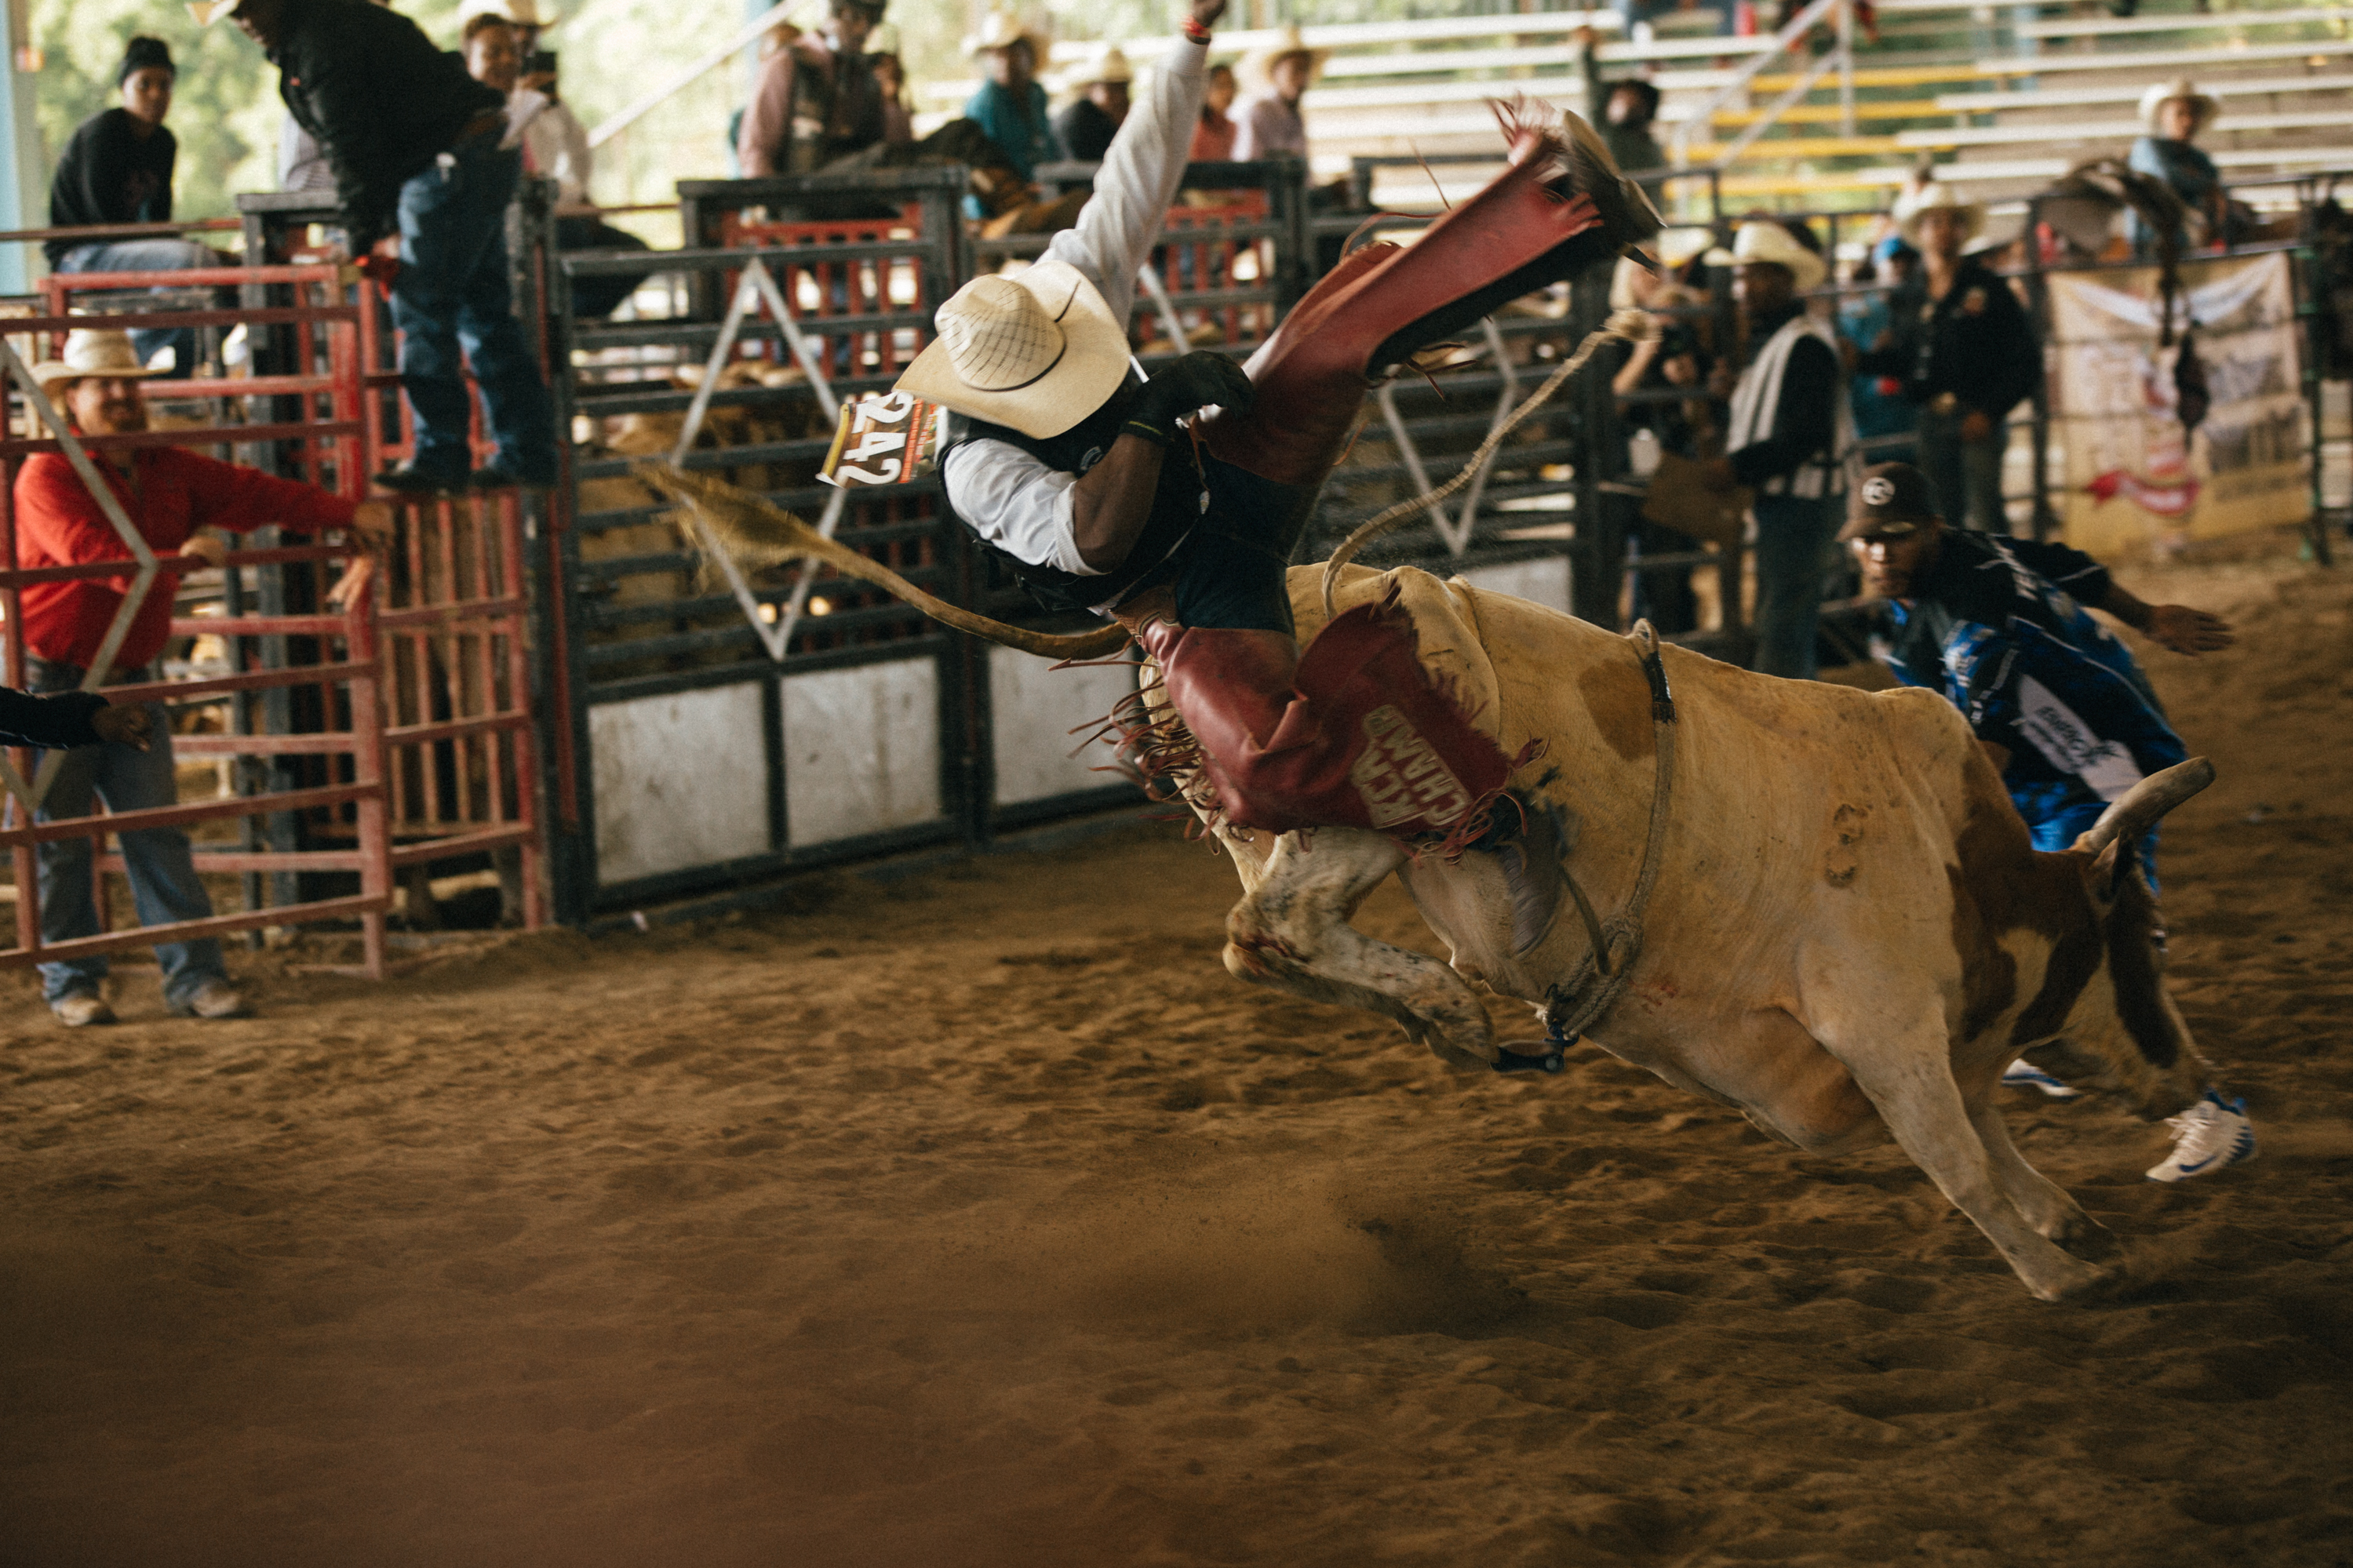 The Bill Pickett Invitational Rodeo in Conyers, Georgia on August 3 and 4th, 2019.